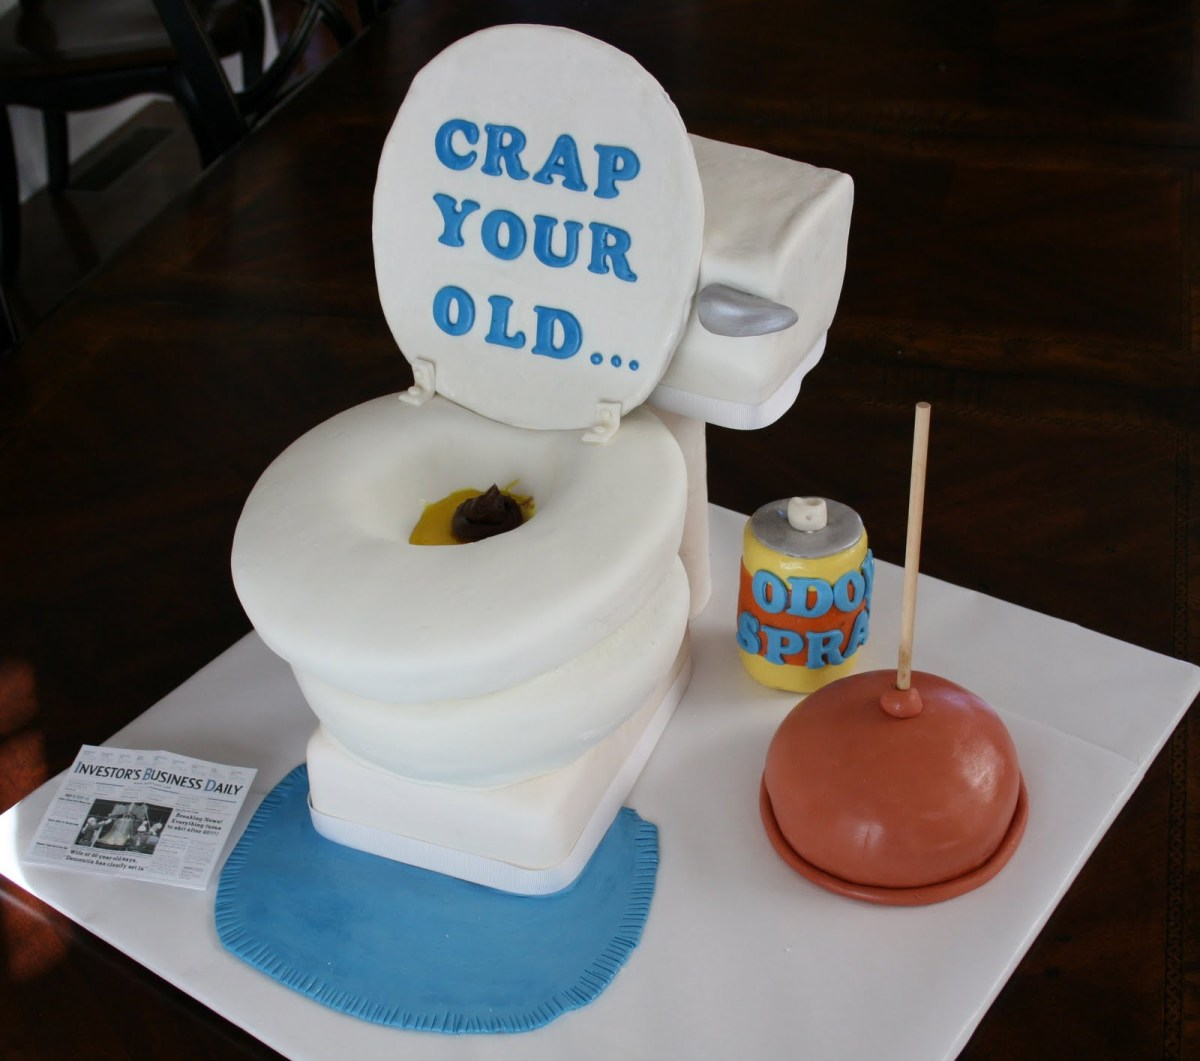 Wondrous Funny Birthday Cakes For Adults 11 Crazy Birthday Cakes For Adults Funny Birthday Cards Online Inifofree Goldxyz